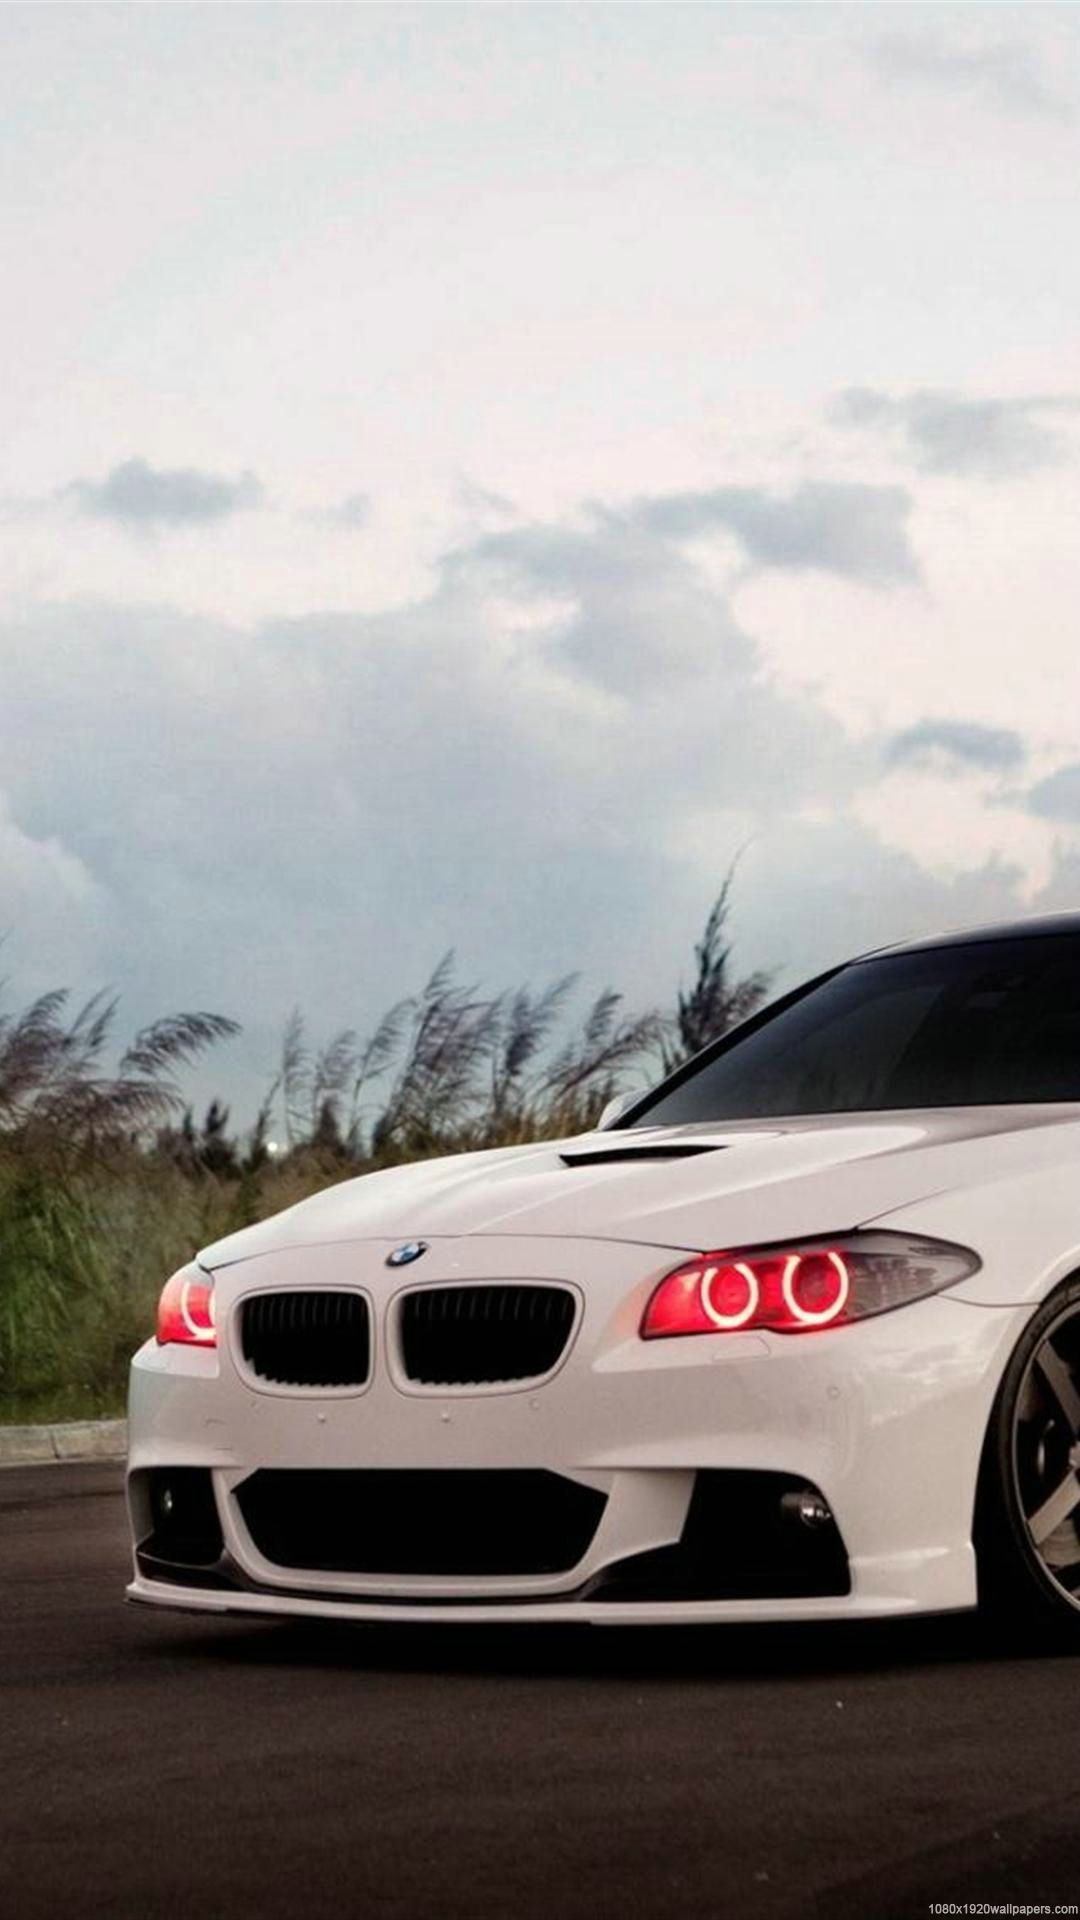 These Are 5 Images About Bmw Car Wallpaper Hd For Mobiledownload